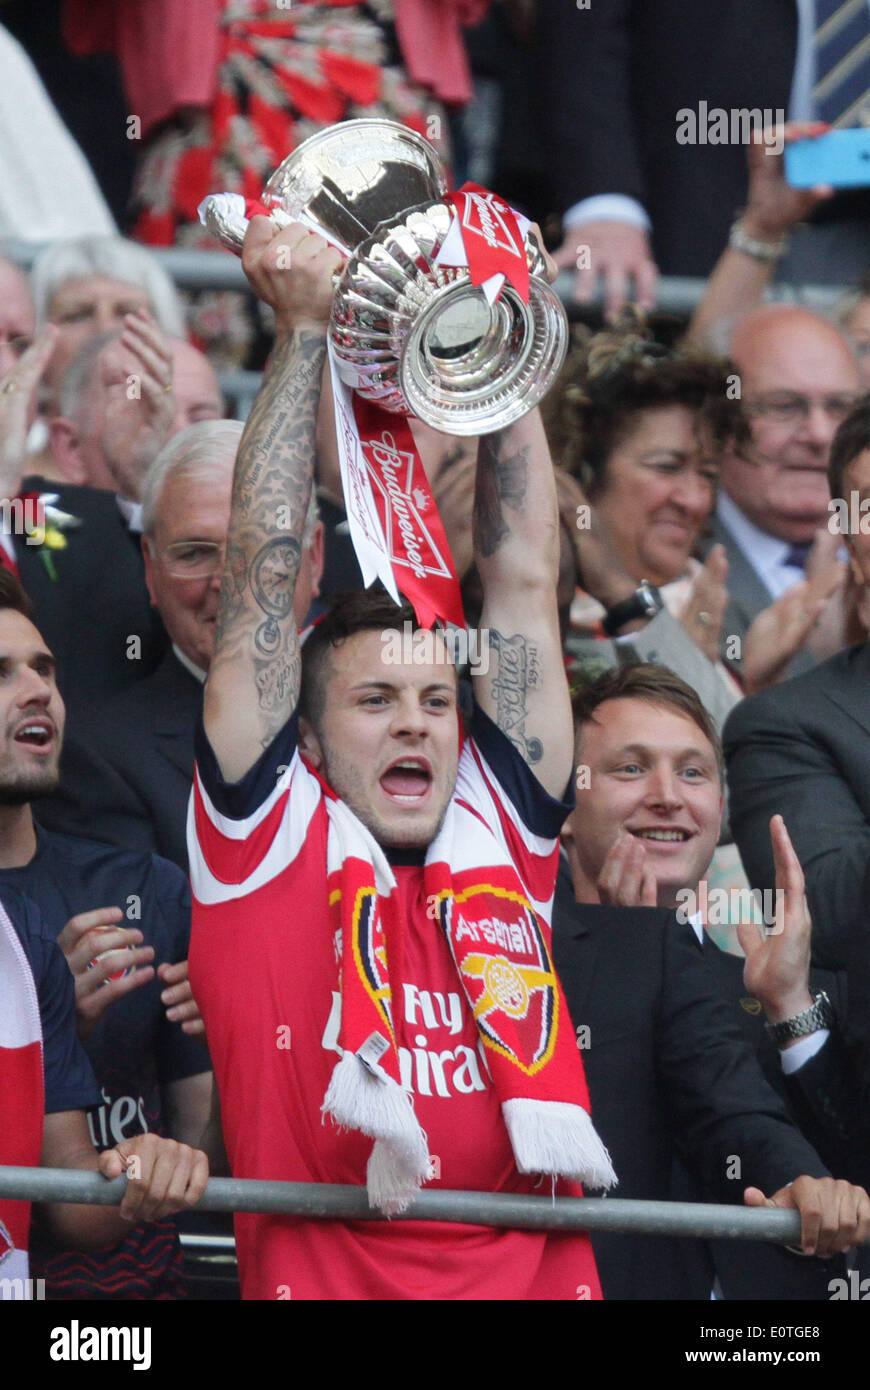 FA Cup Final - Arsenal v Hull City . . Wembley, London, UK . . 17.05.2014 Jack Wilshere (A) with the FA Cup. **This picture may only be used for editorial use** Pic: Paul Marriott Photography - Stock Image